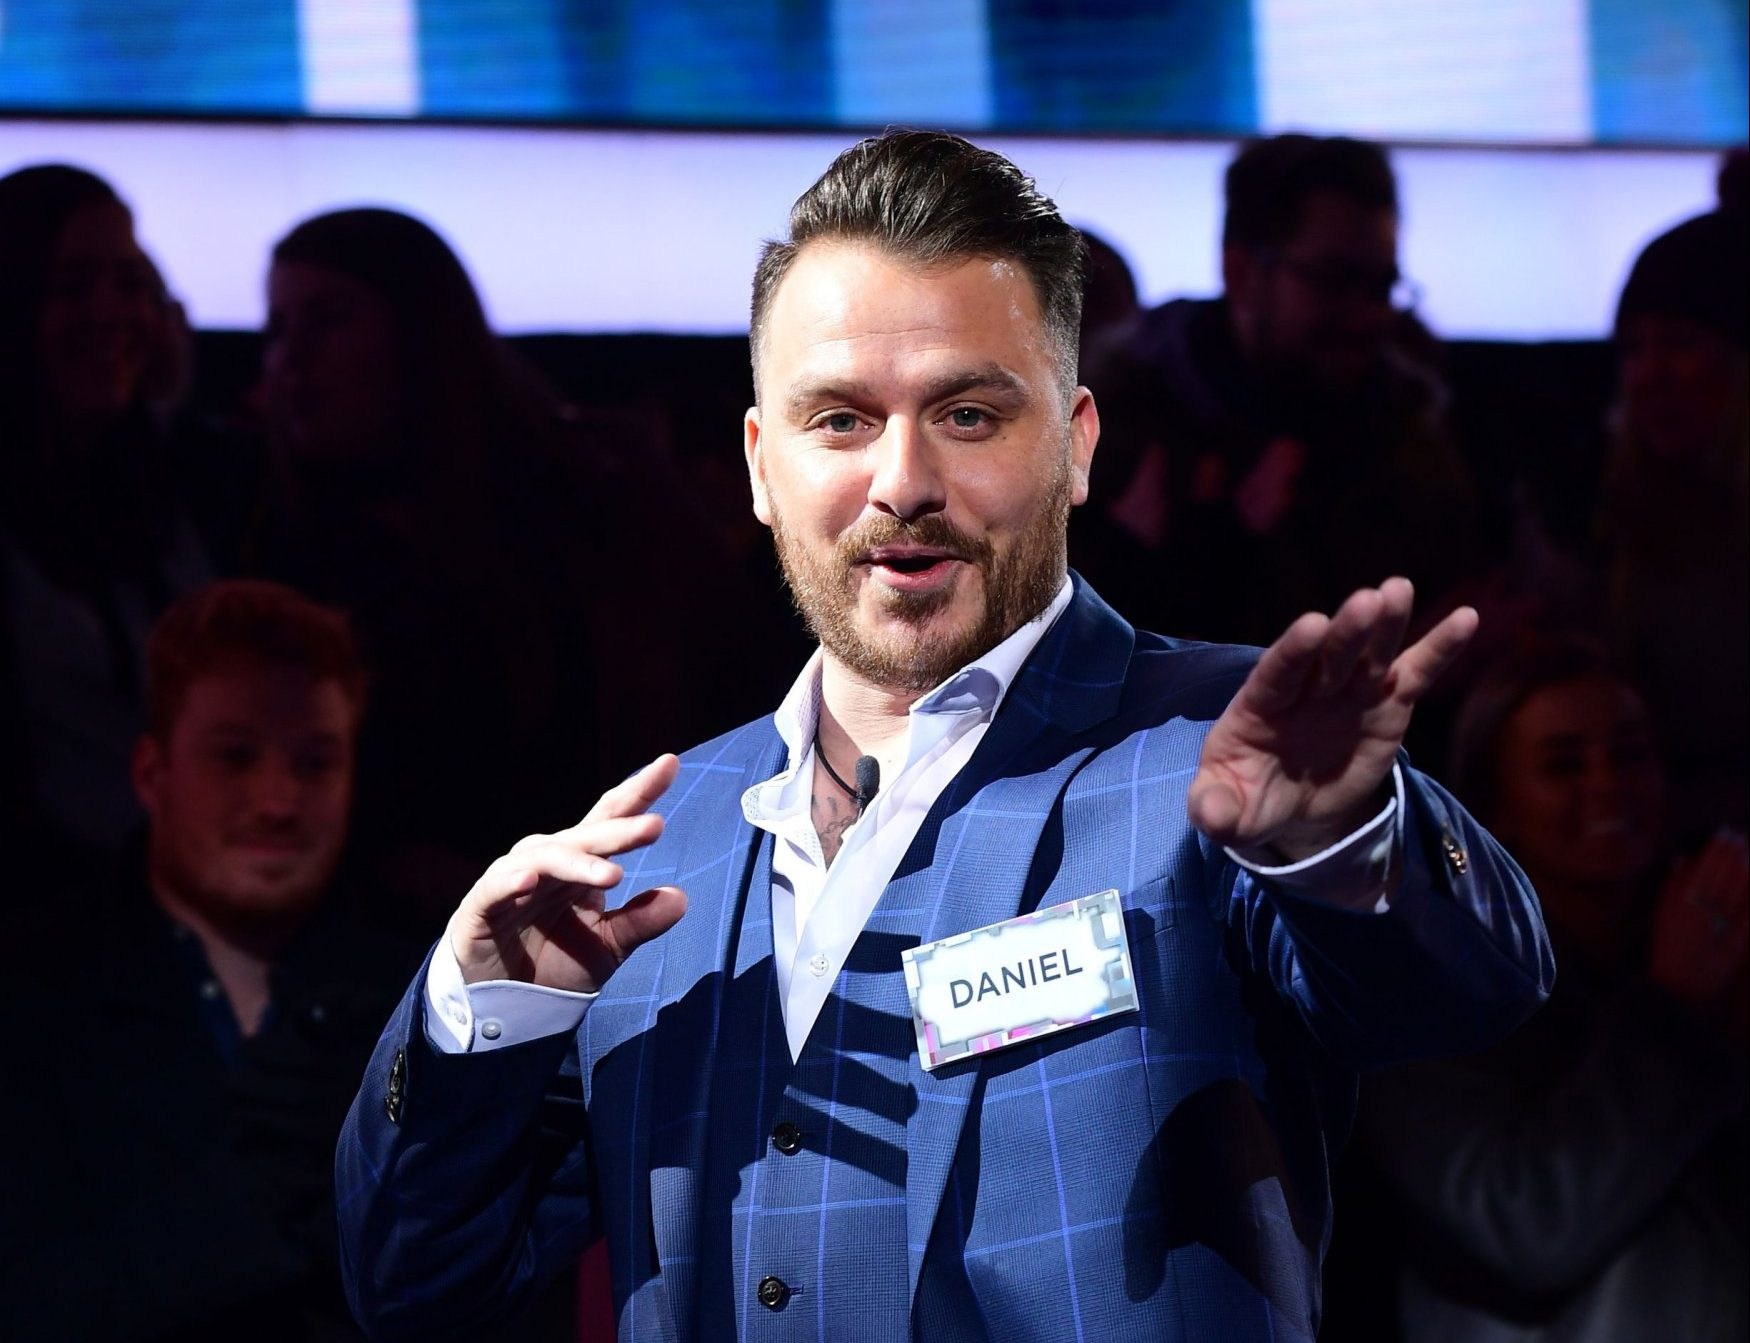 Dapper Laughs on how he's hoping to 'right some wrongs' in Celebrity Big Brother: 'I'm a different man now'